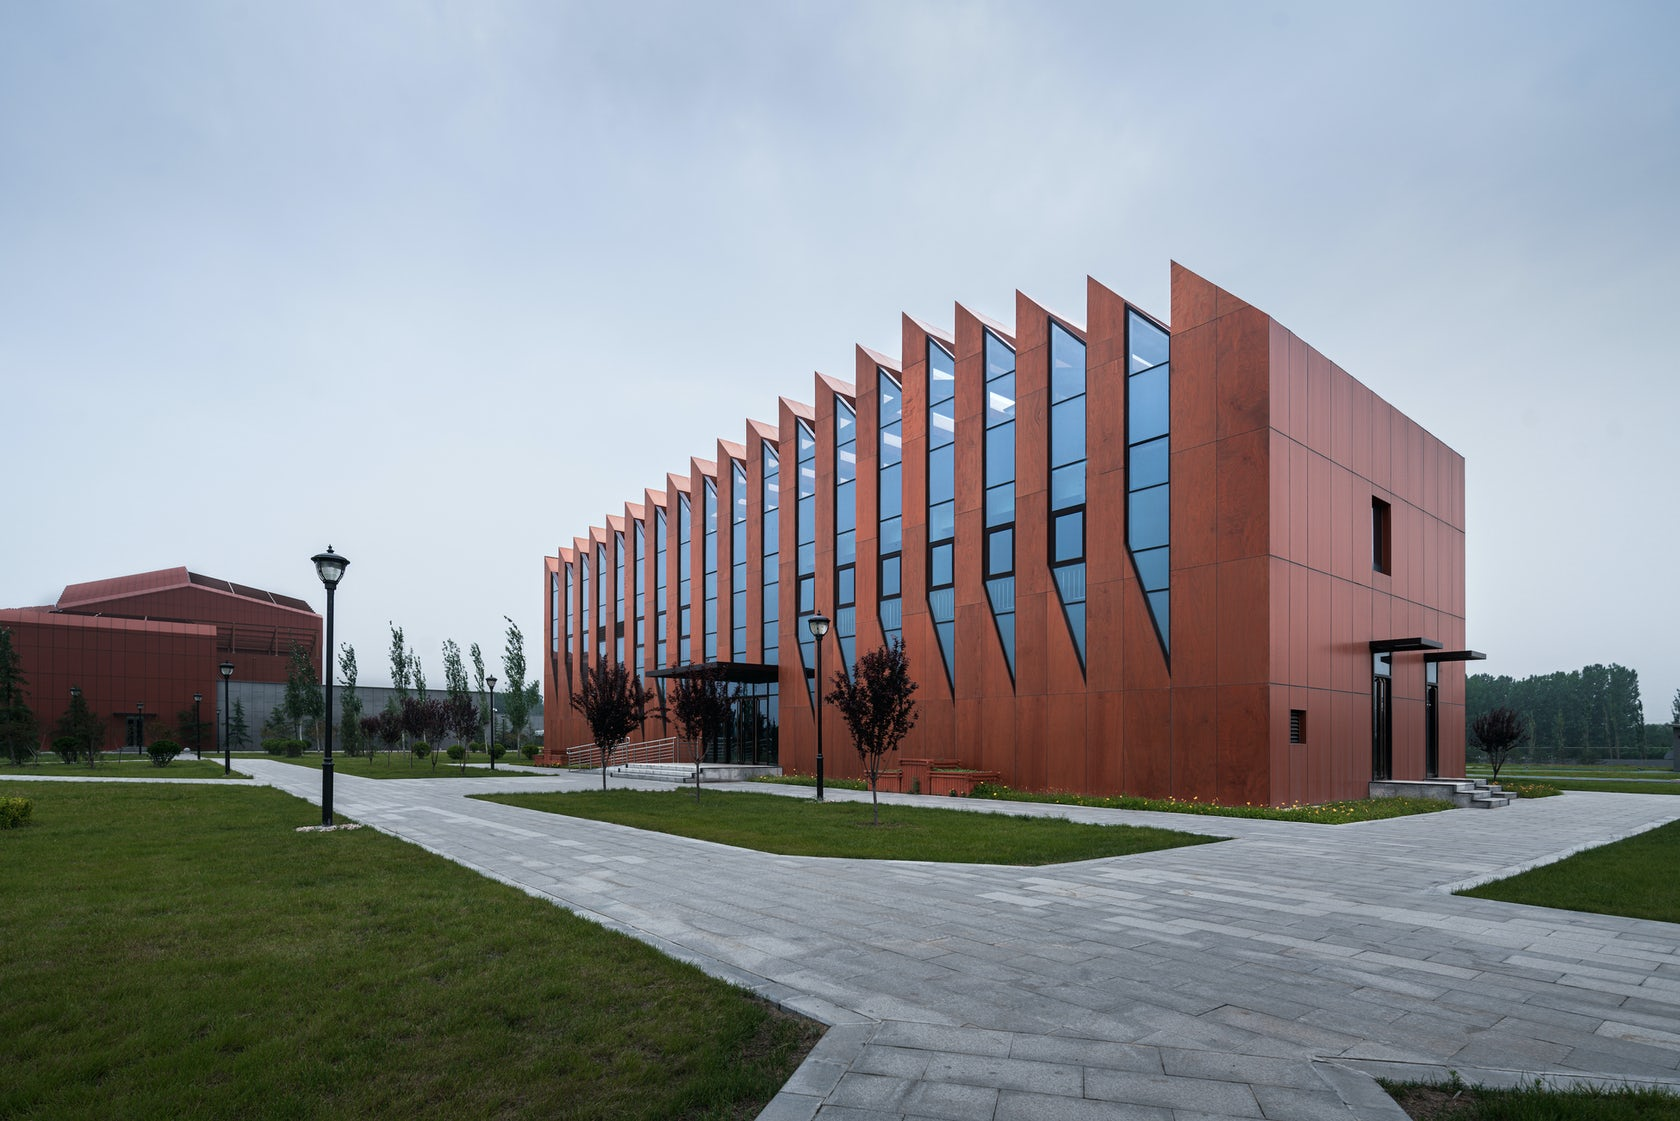 © China Architecture Design & Research Group (CADG)